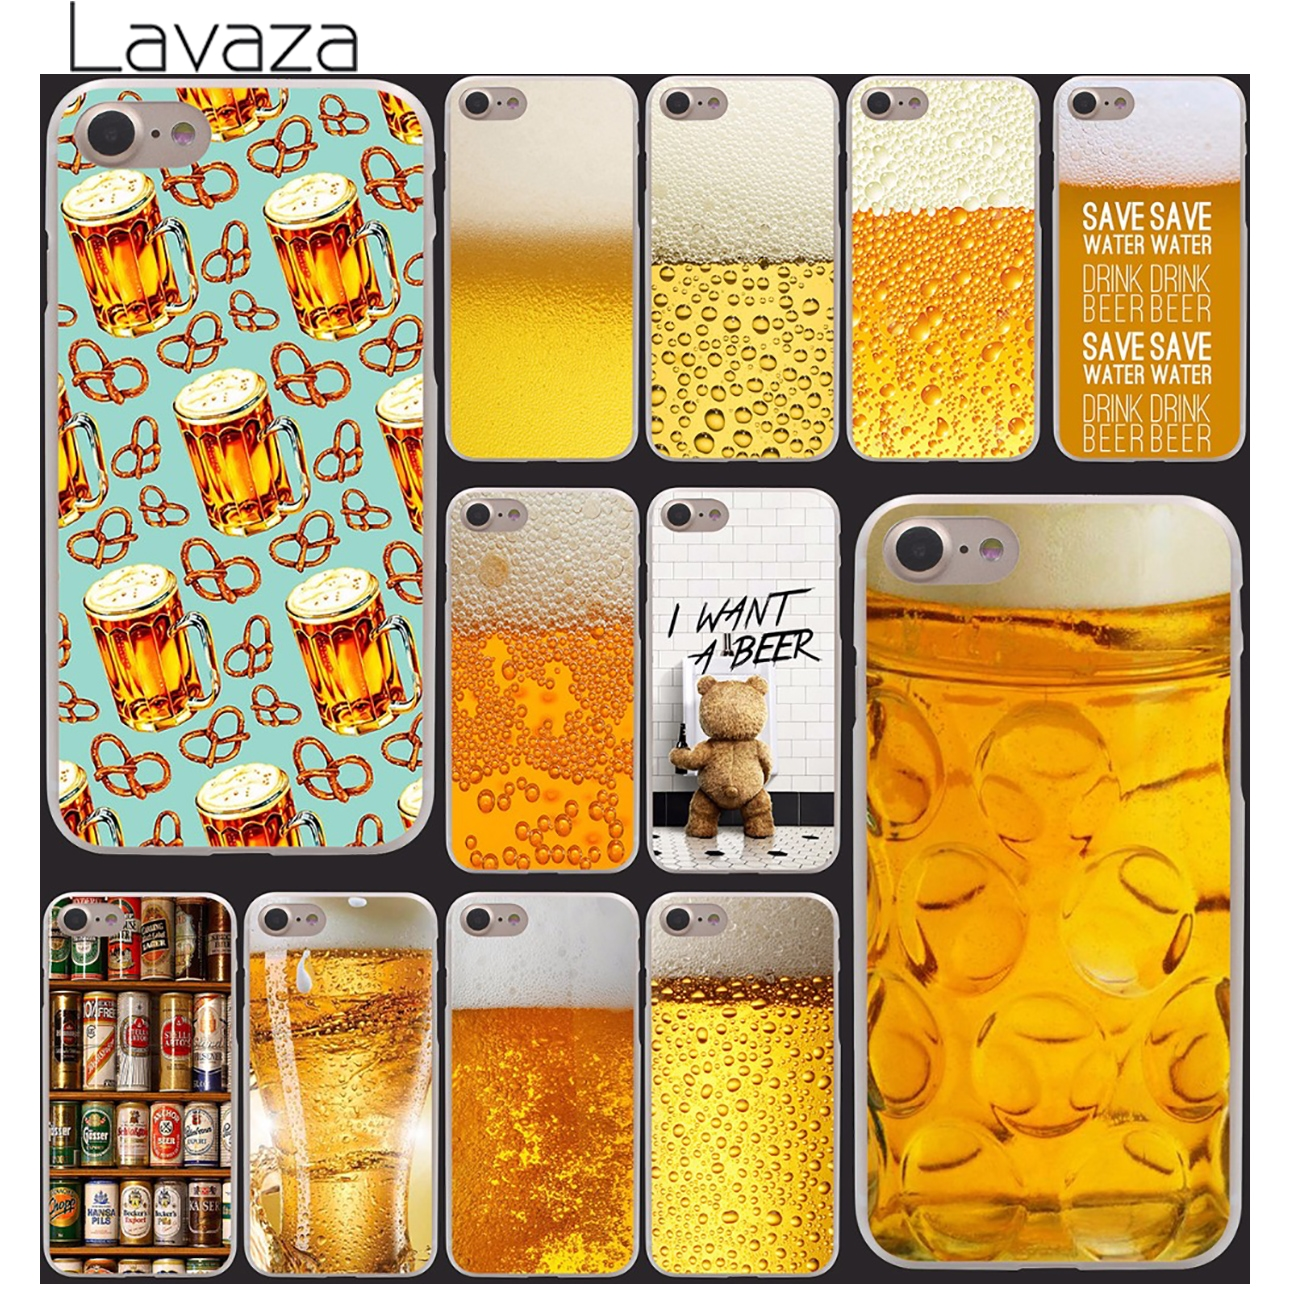 A Glass of Beer Cool Summer Skin Hard Clear Skin Transparent For iPhone 6 6s 6 plus 6+ Case Cover